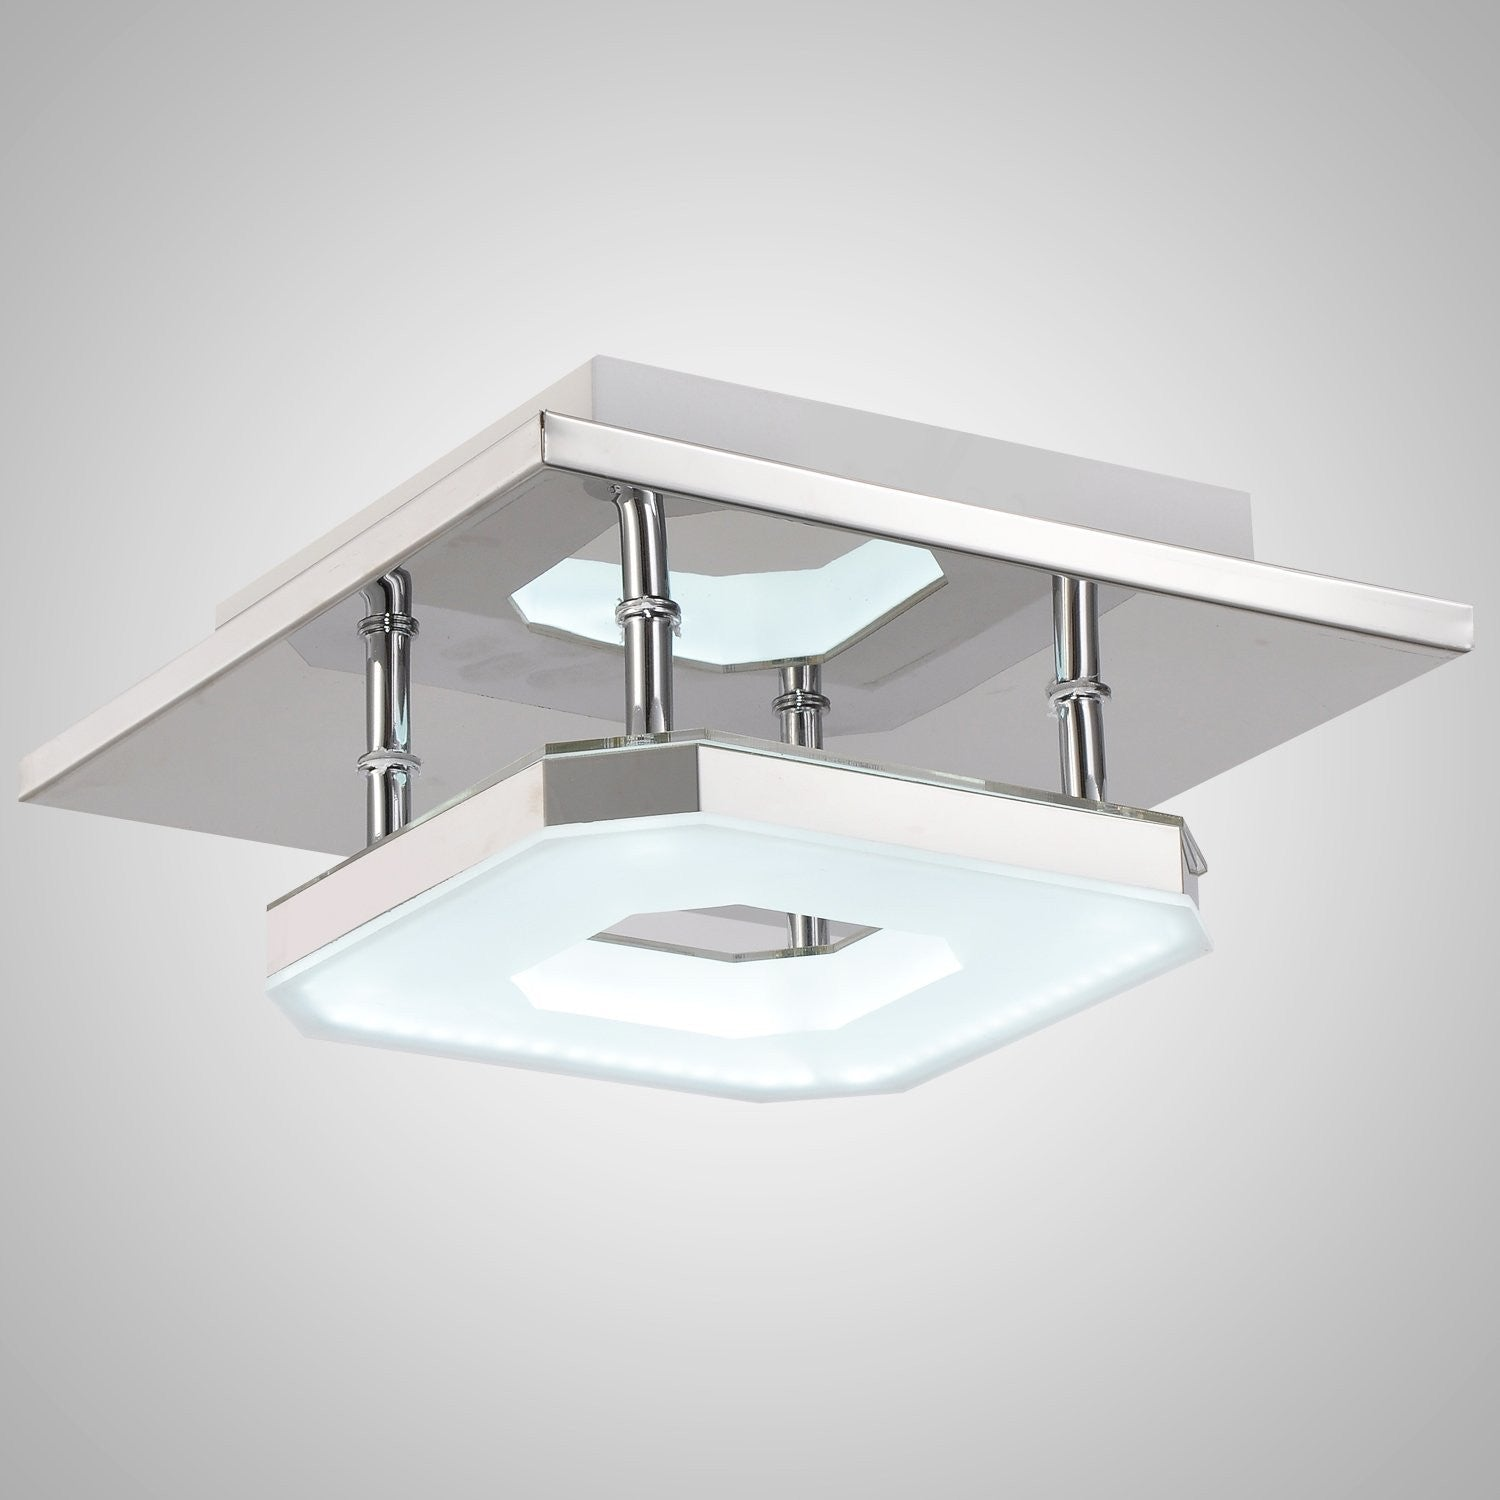 nate to oil bronze shade canada semi ceilings flush electric globe finish dp rubbed amazon glass light ceiling close mount lights clear